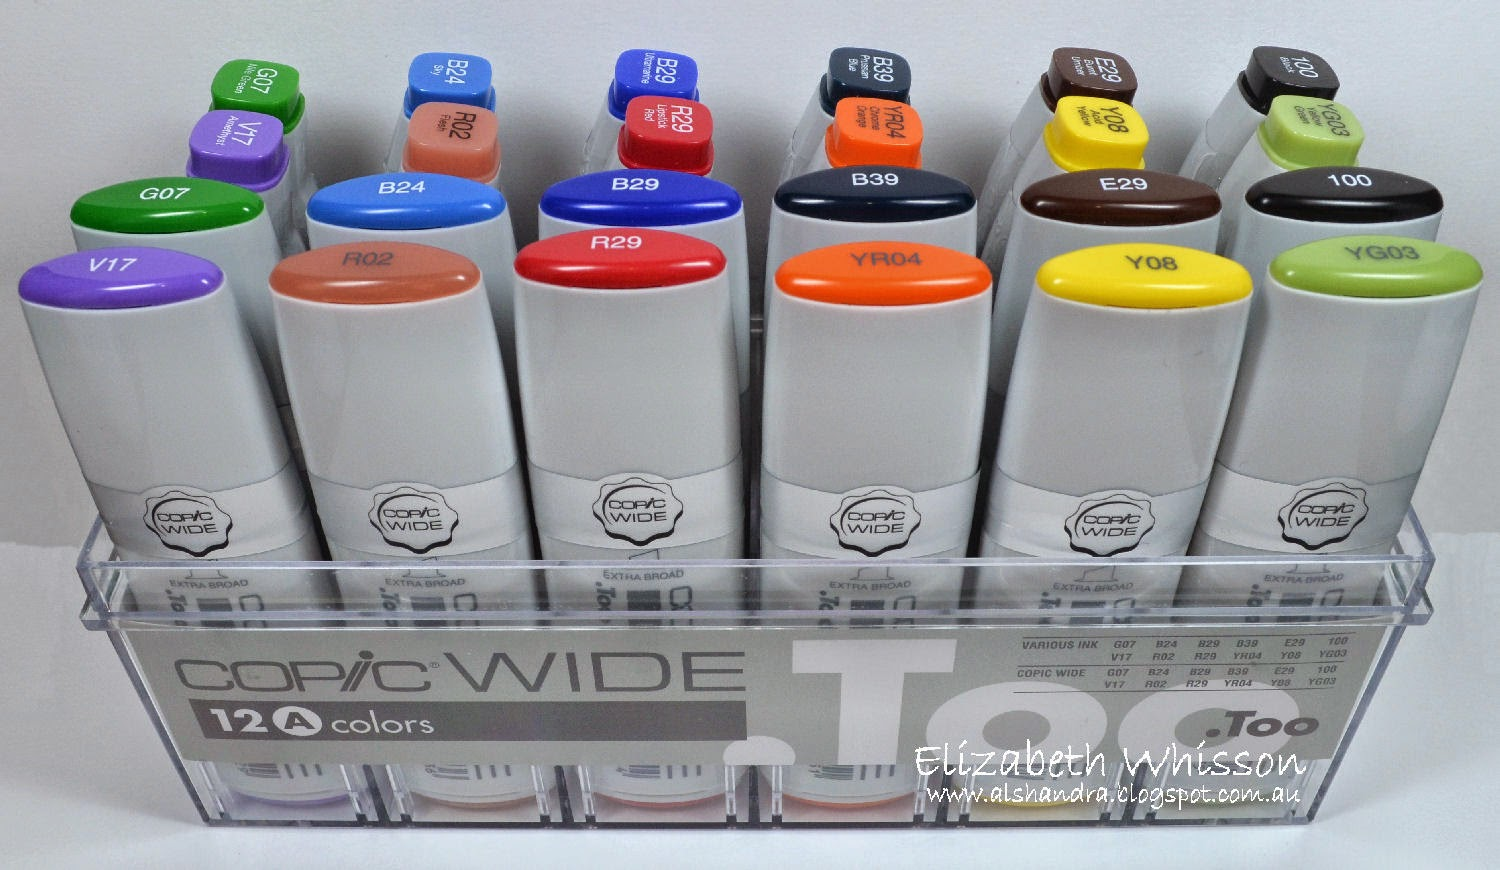 Copic, markers, Copic Wide, #WinterWIDE, competition, winner, .Too, Copics, various ink, Elizabeth Whisson